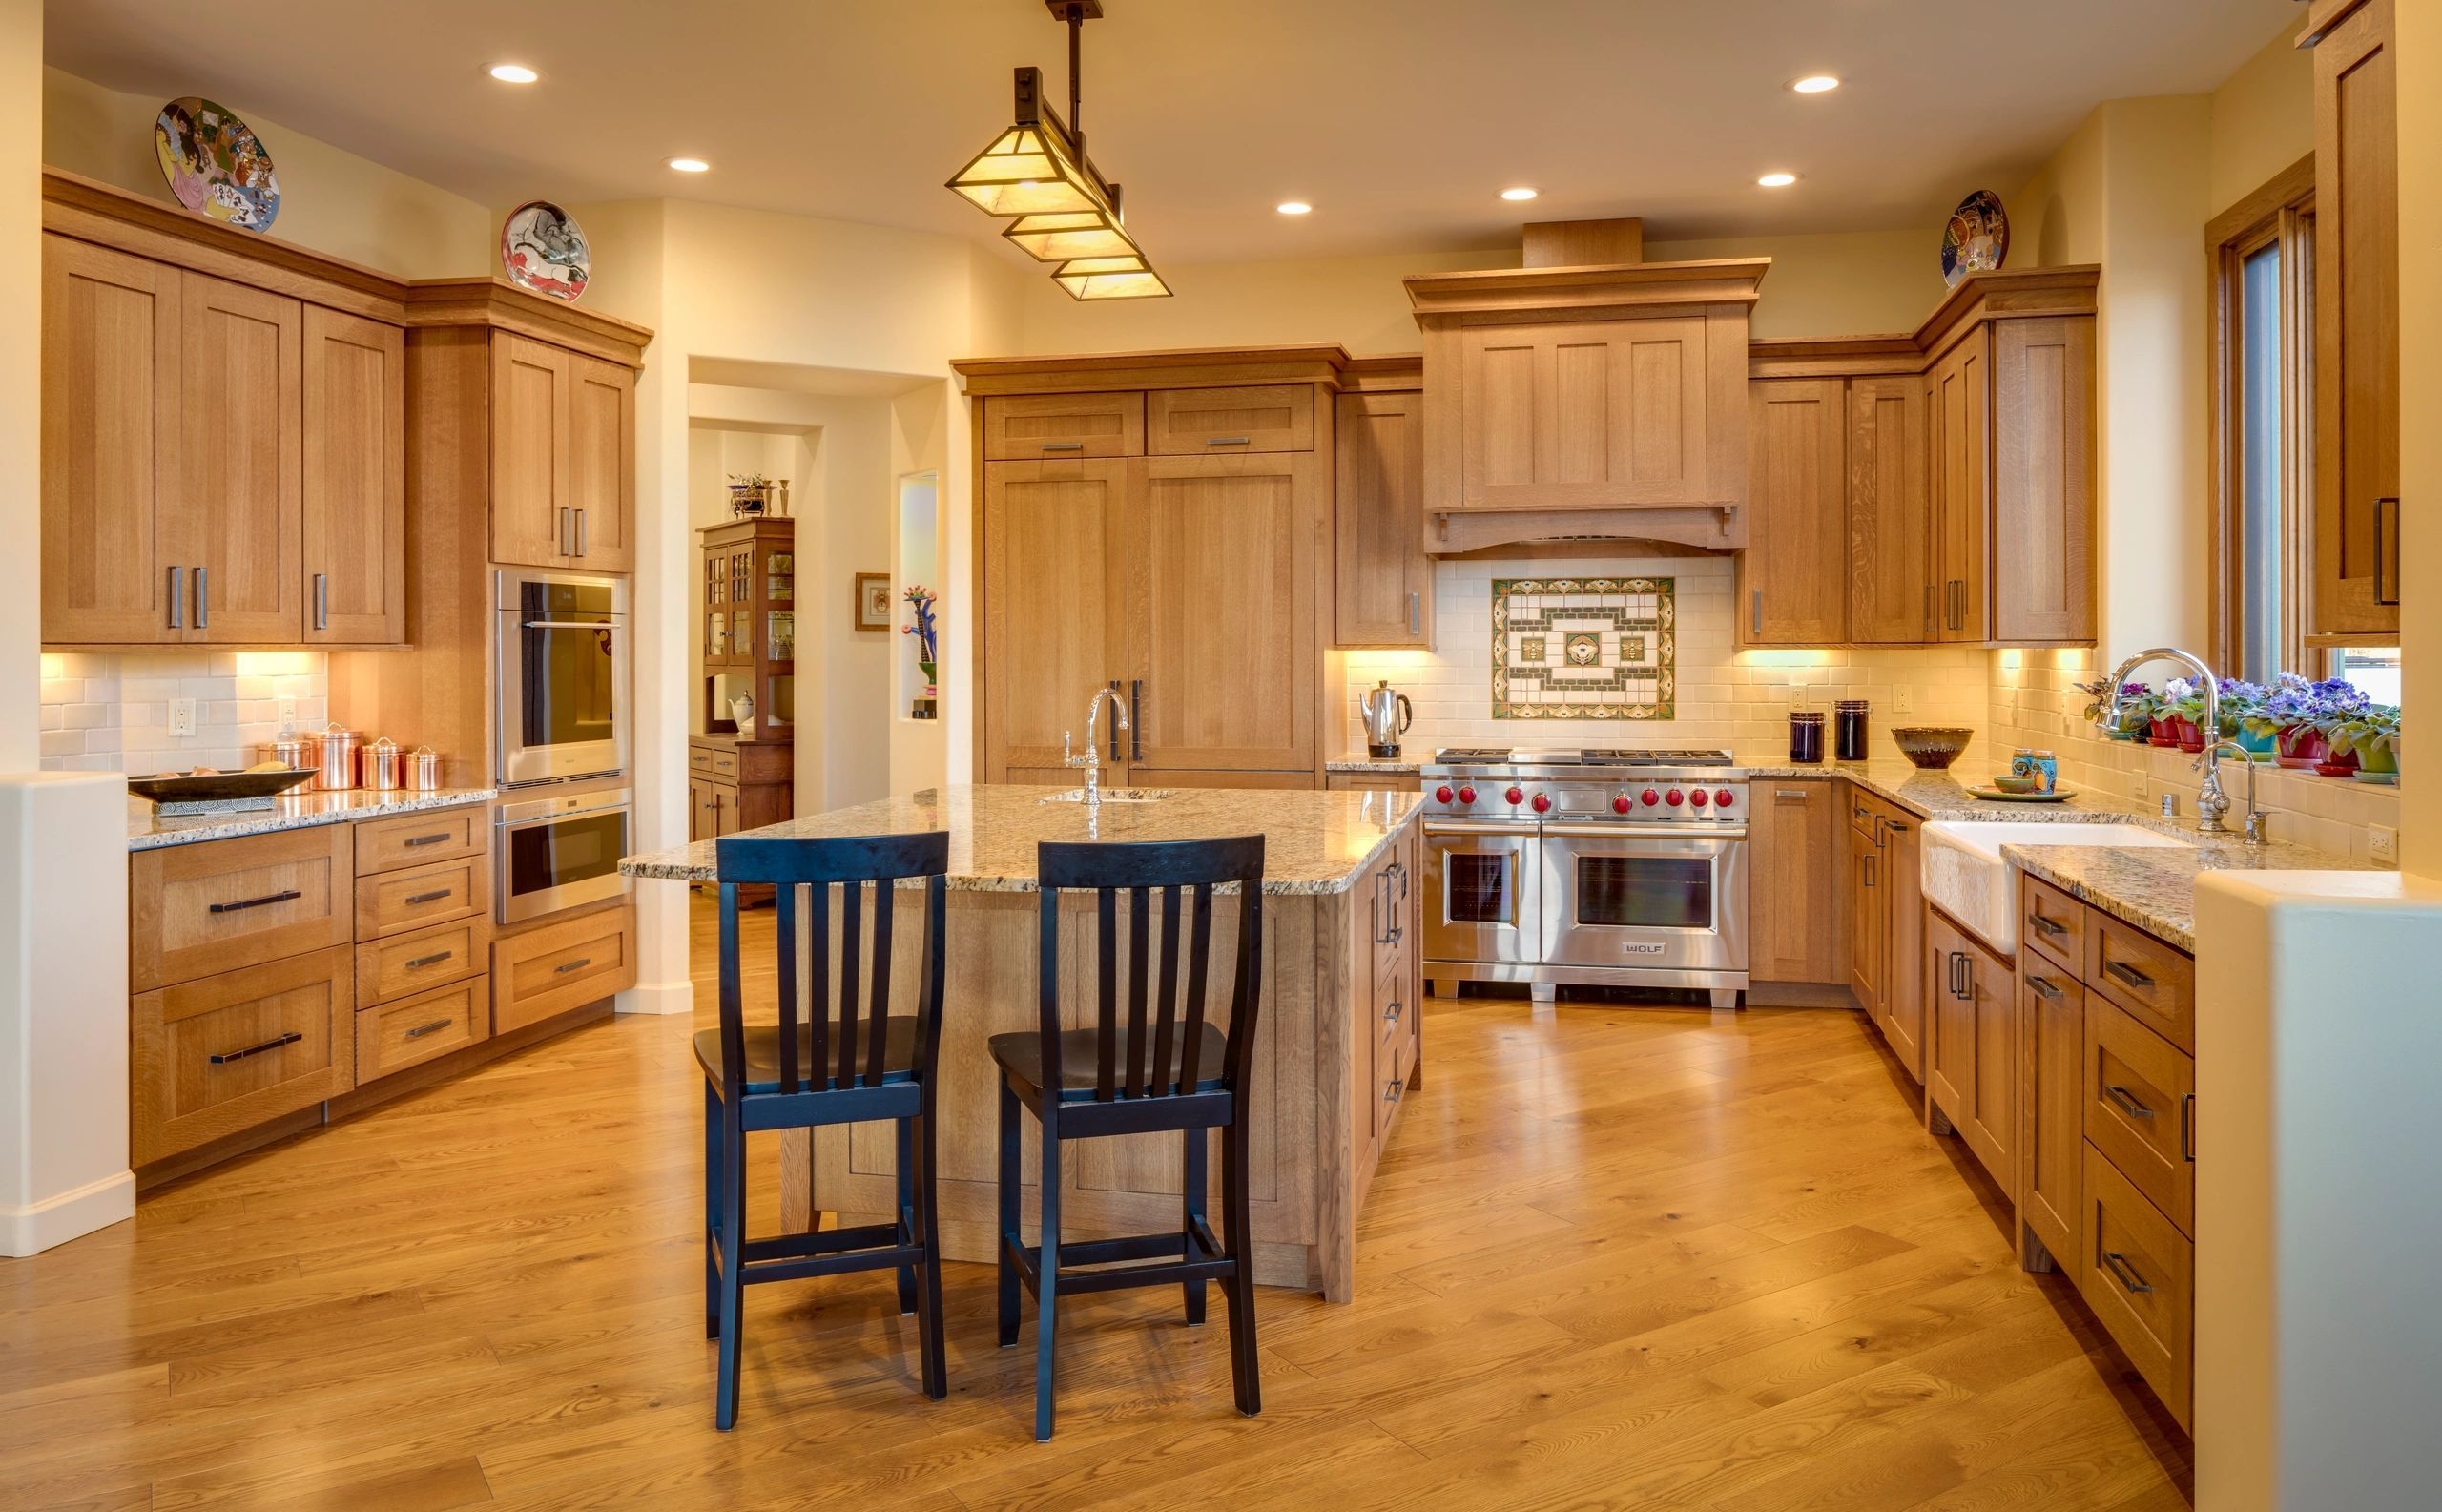 Stop By Our Showroom In Albuquerque You Will Enjoy The Experience Chatting To Our Talented Designers Ki Kitchen Design Kitchen Remodeling Projects Kitchen